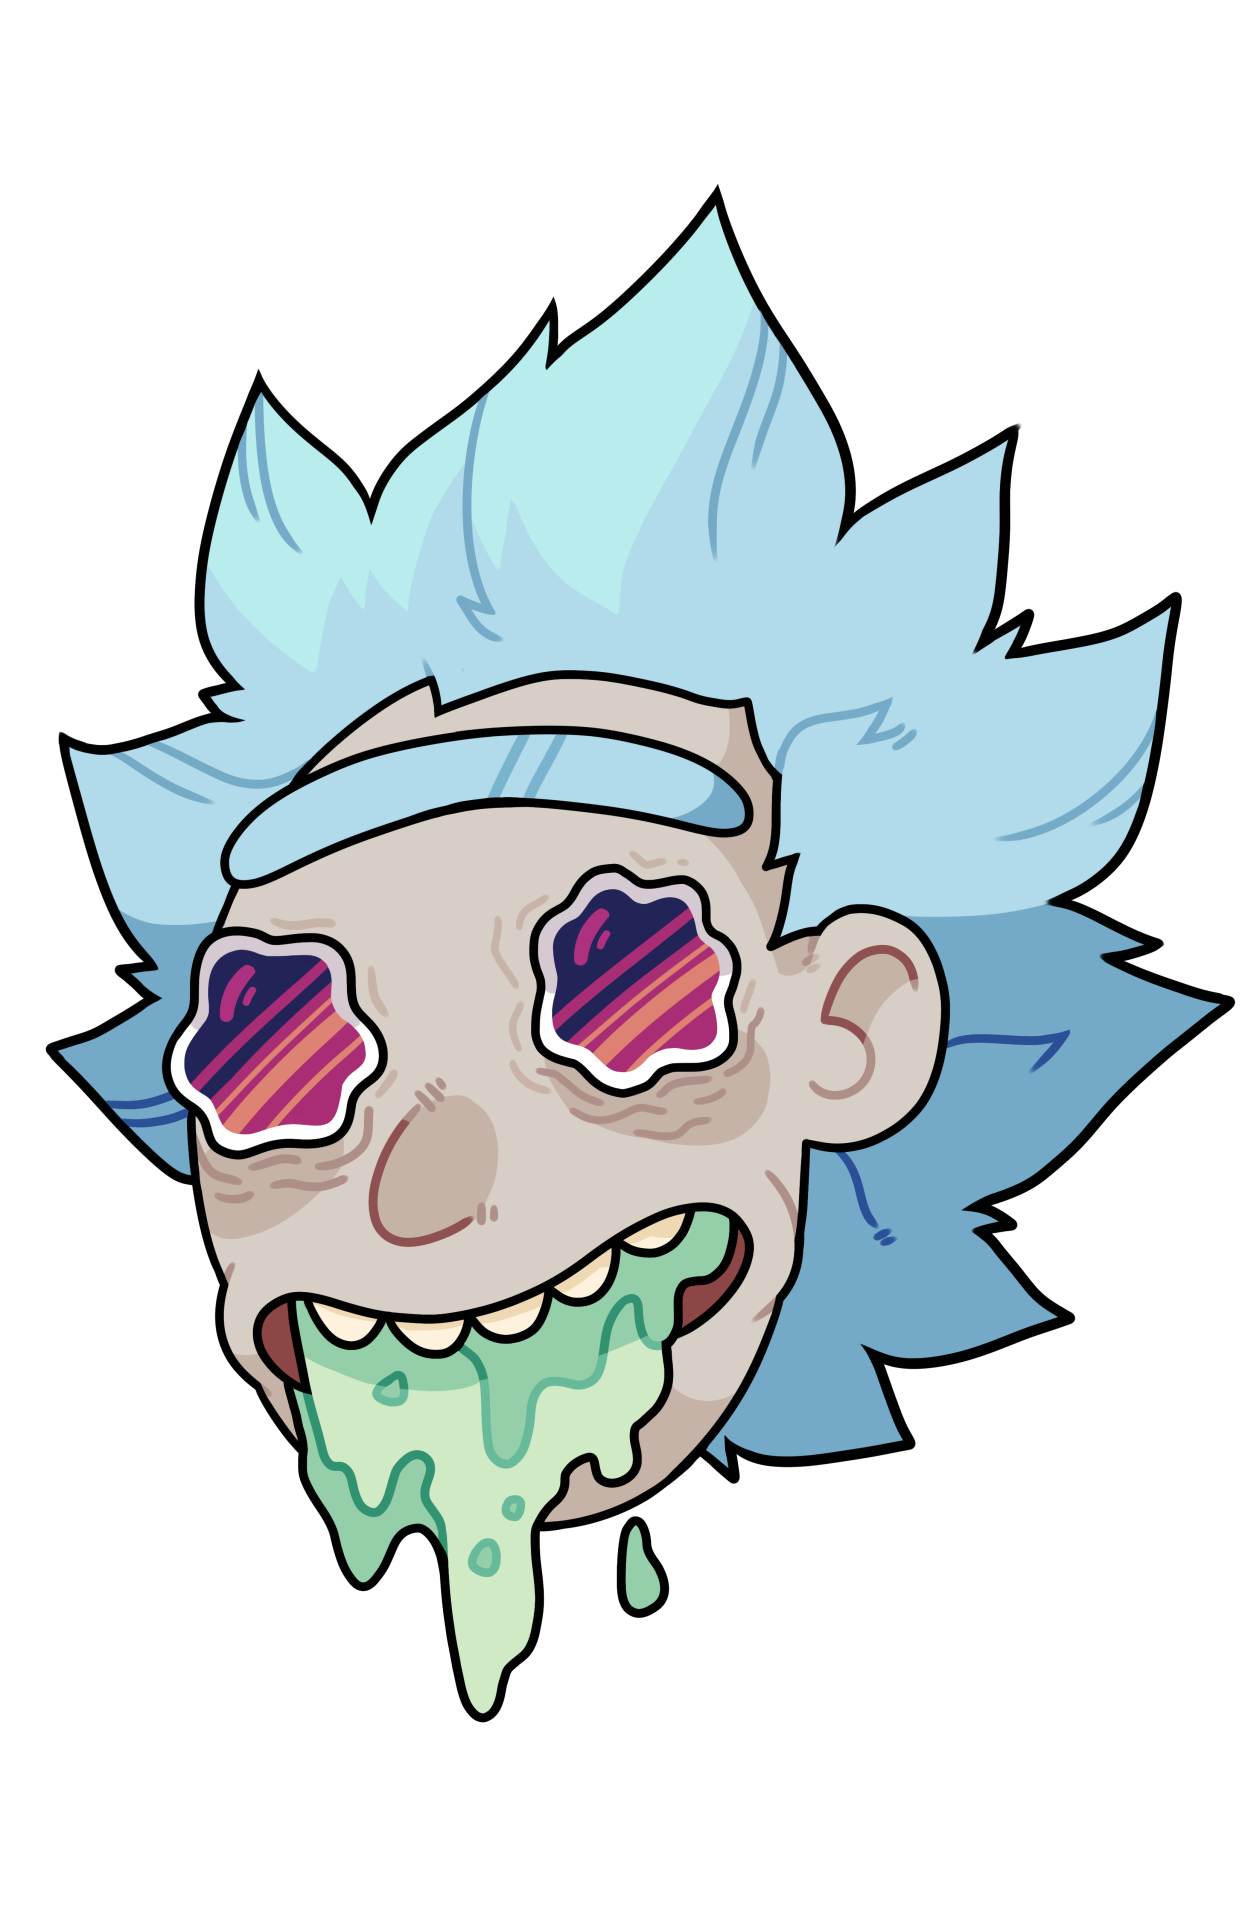 Download Rick And Morty Clipart HQ PNG Image.